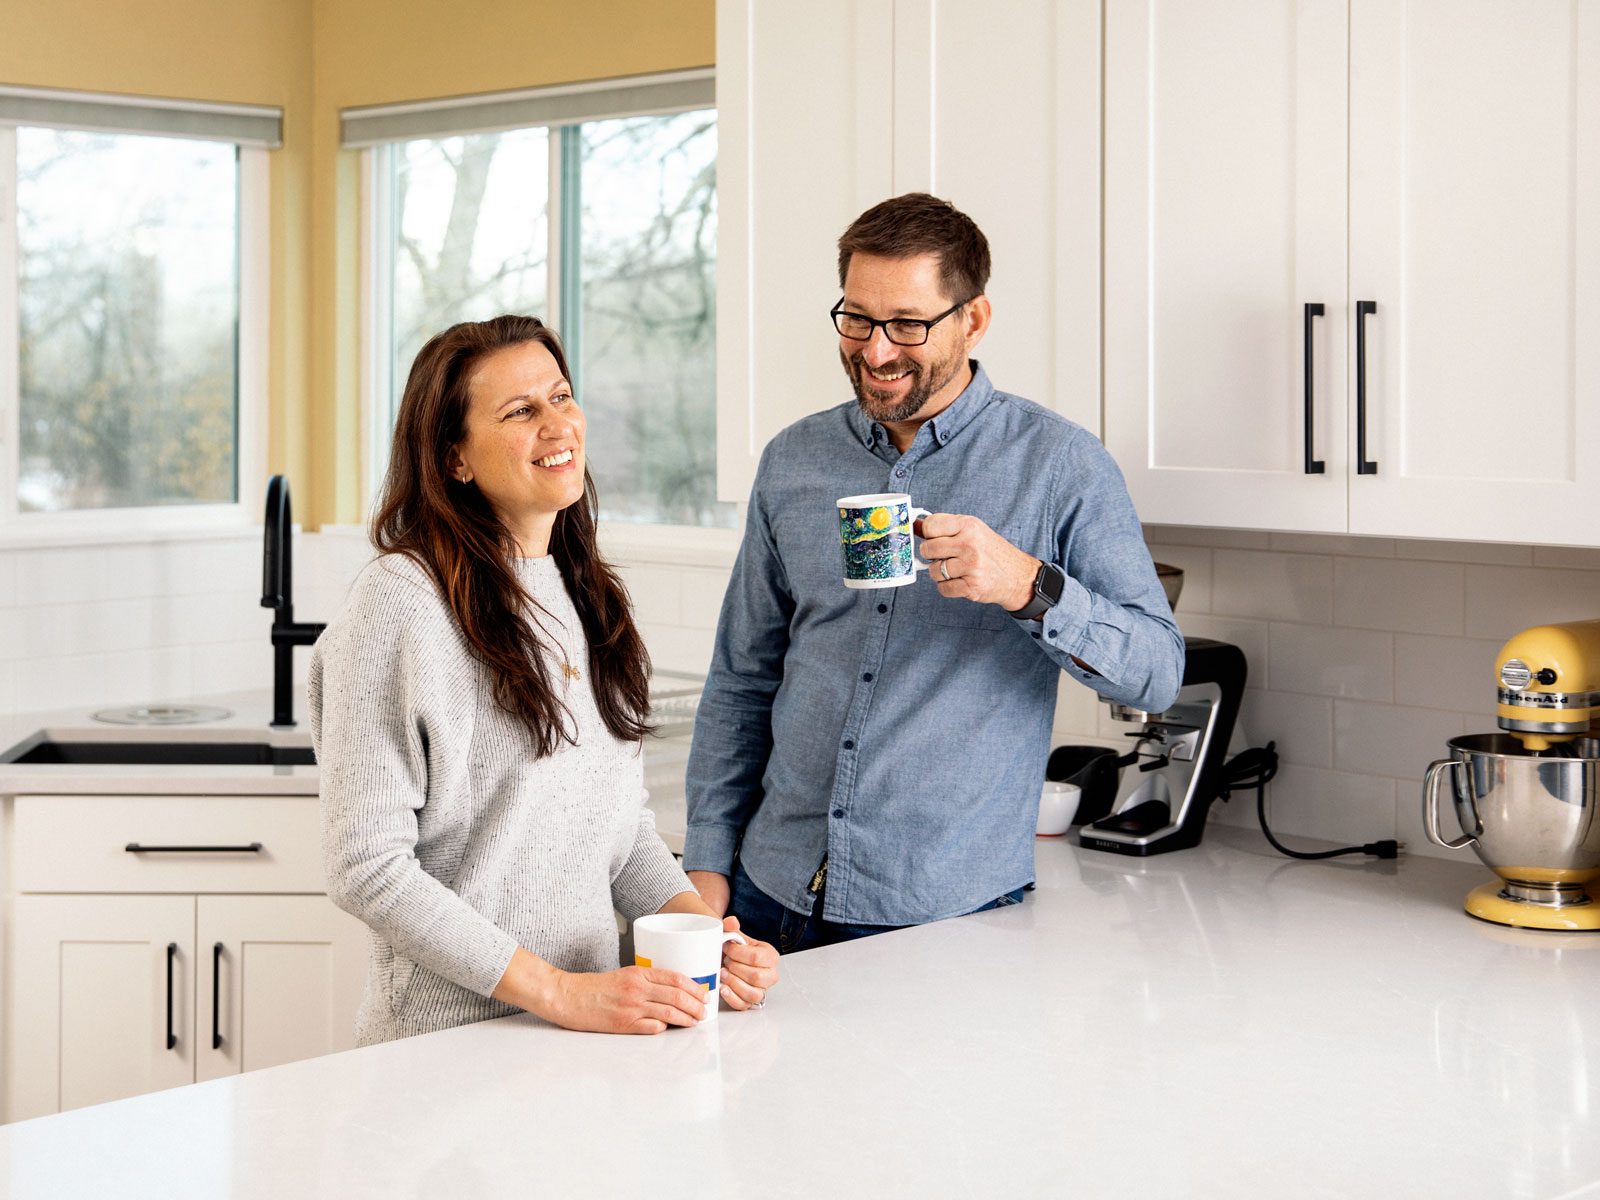 Horizontal image of Man and woman making coffee in a renovated kitchen